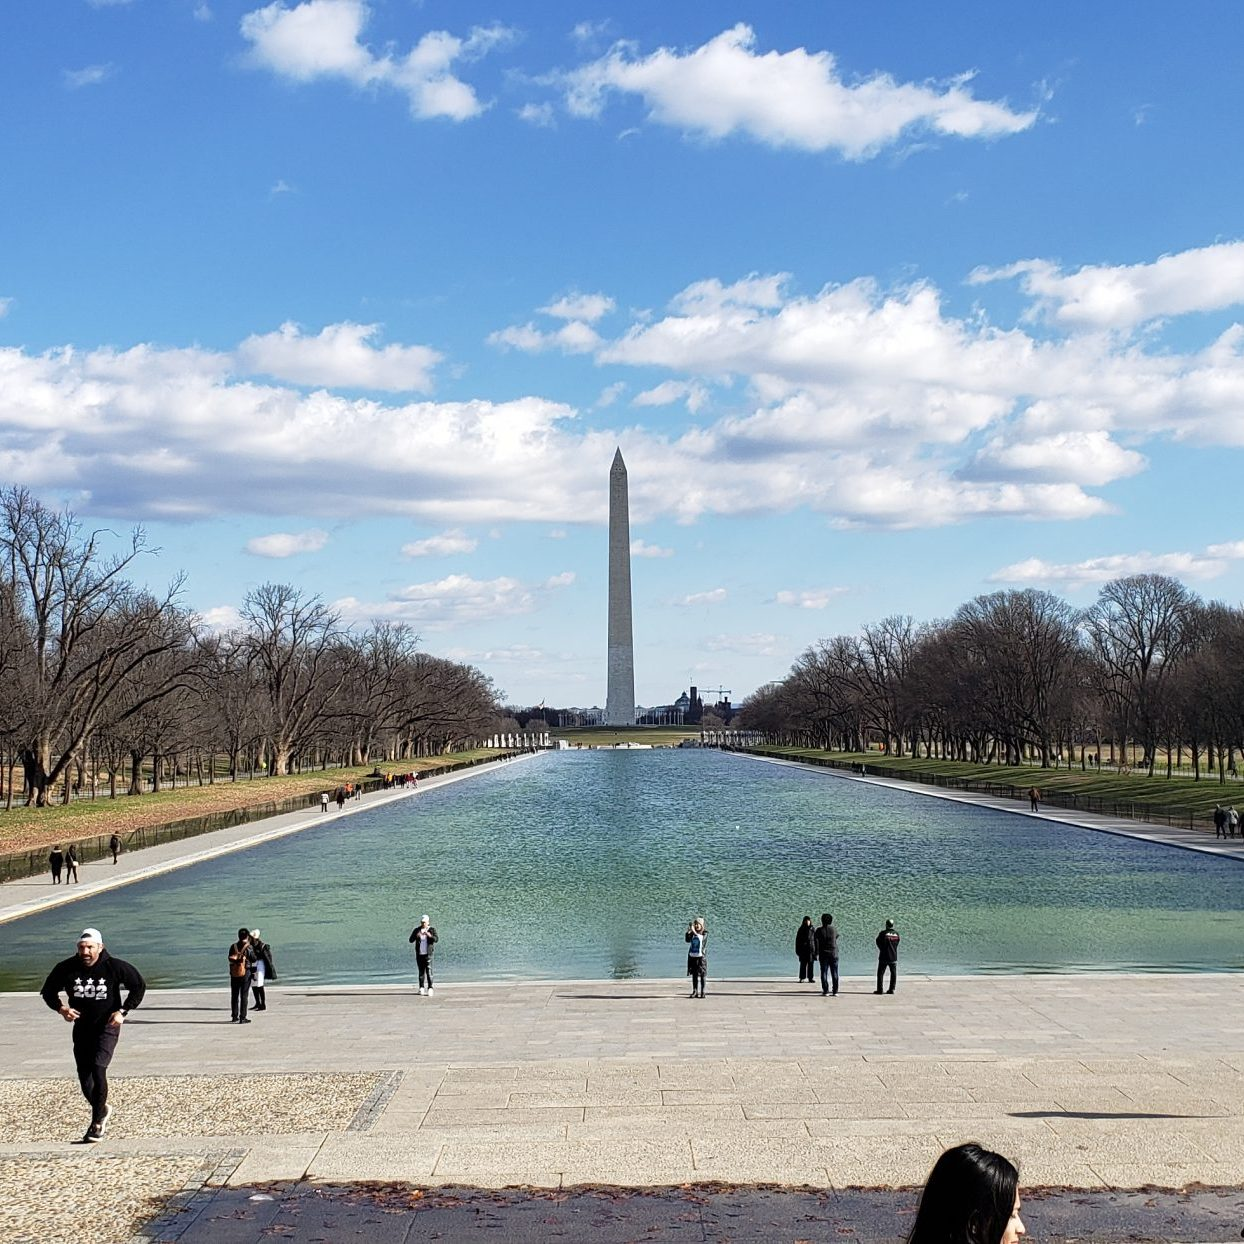 It's a washington monument as seen across the big reflecting pool.